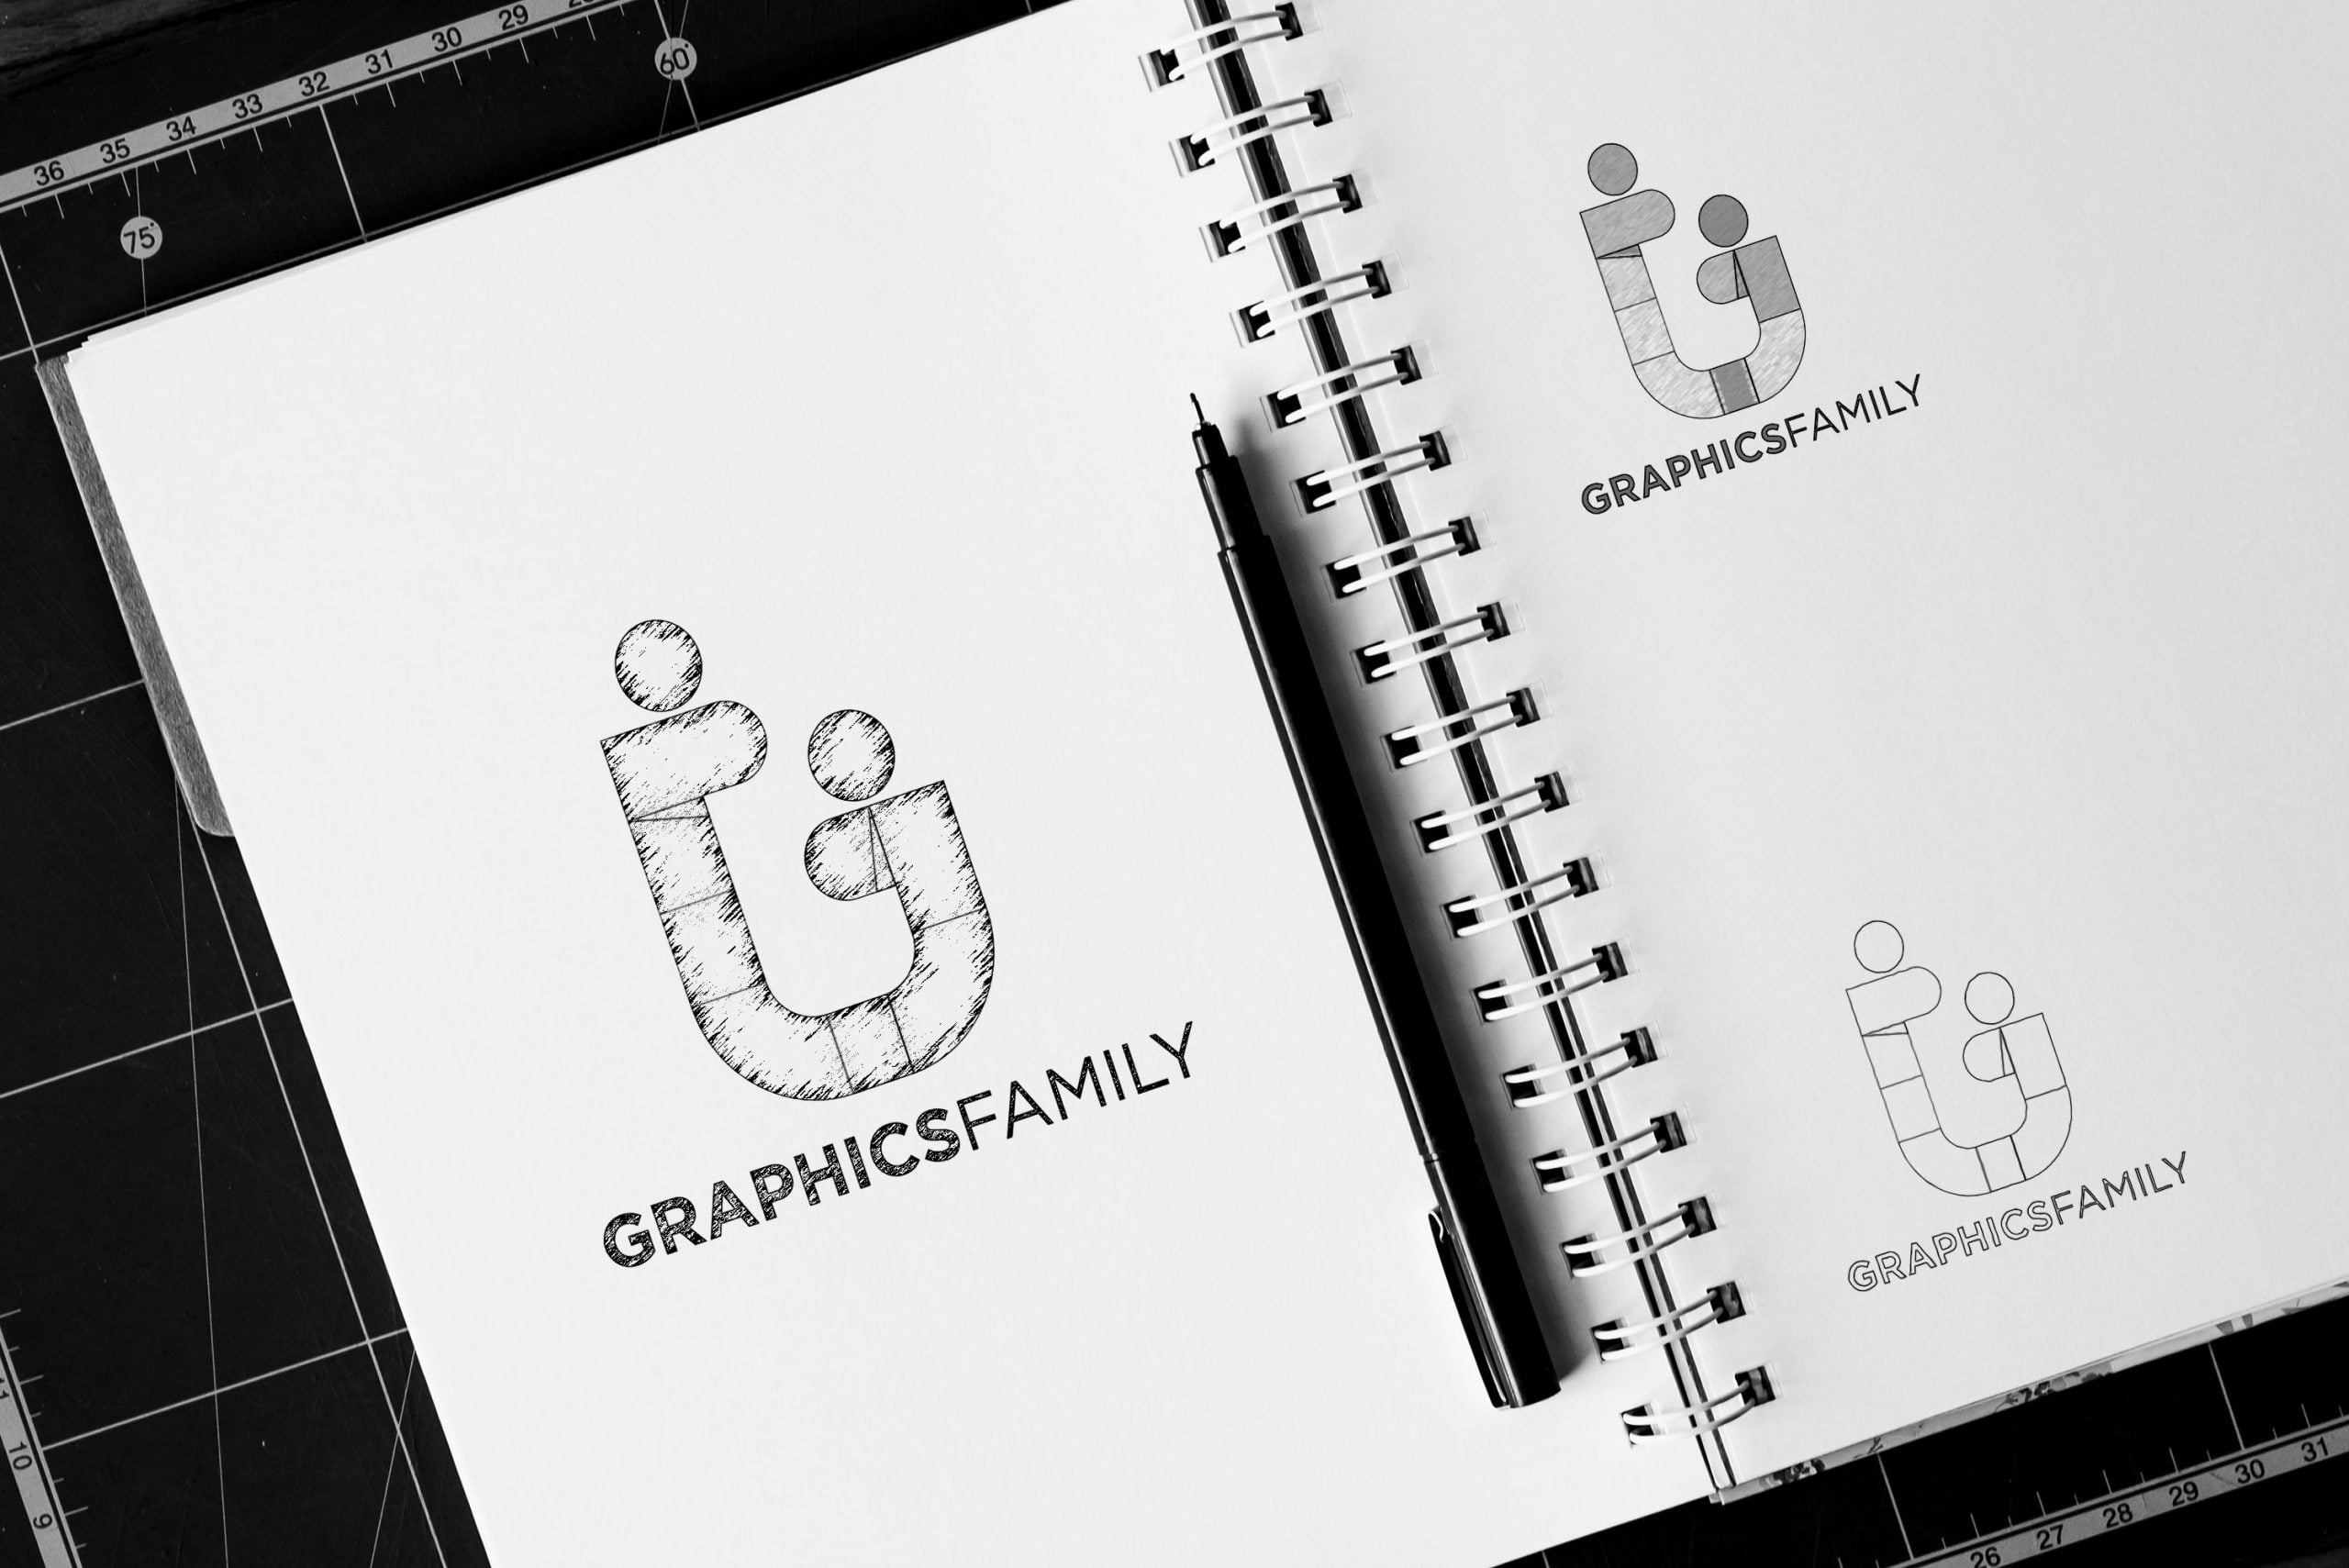 Notebook Sketch Logo Mockup Graphic Family